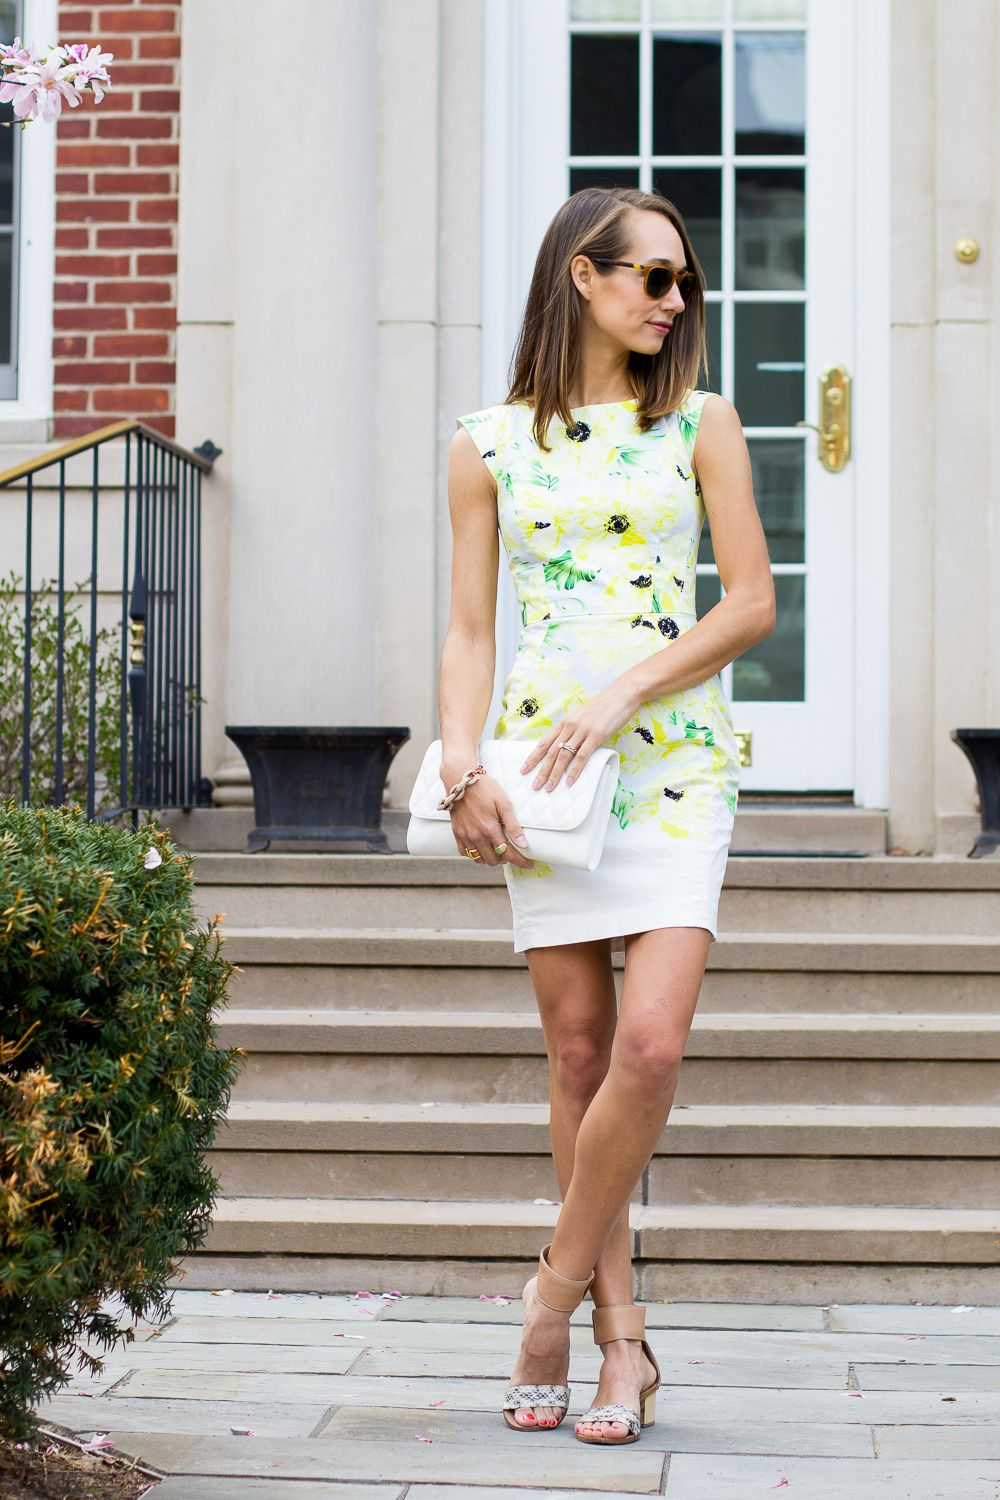 Yellow dress wedding guest  floral bodycon dress frenchconnection jcrew verabradley